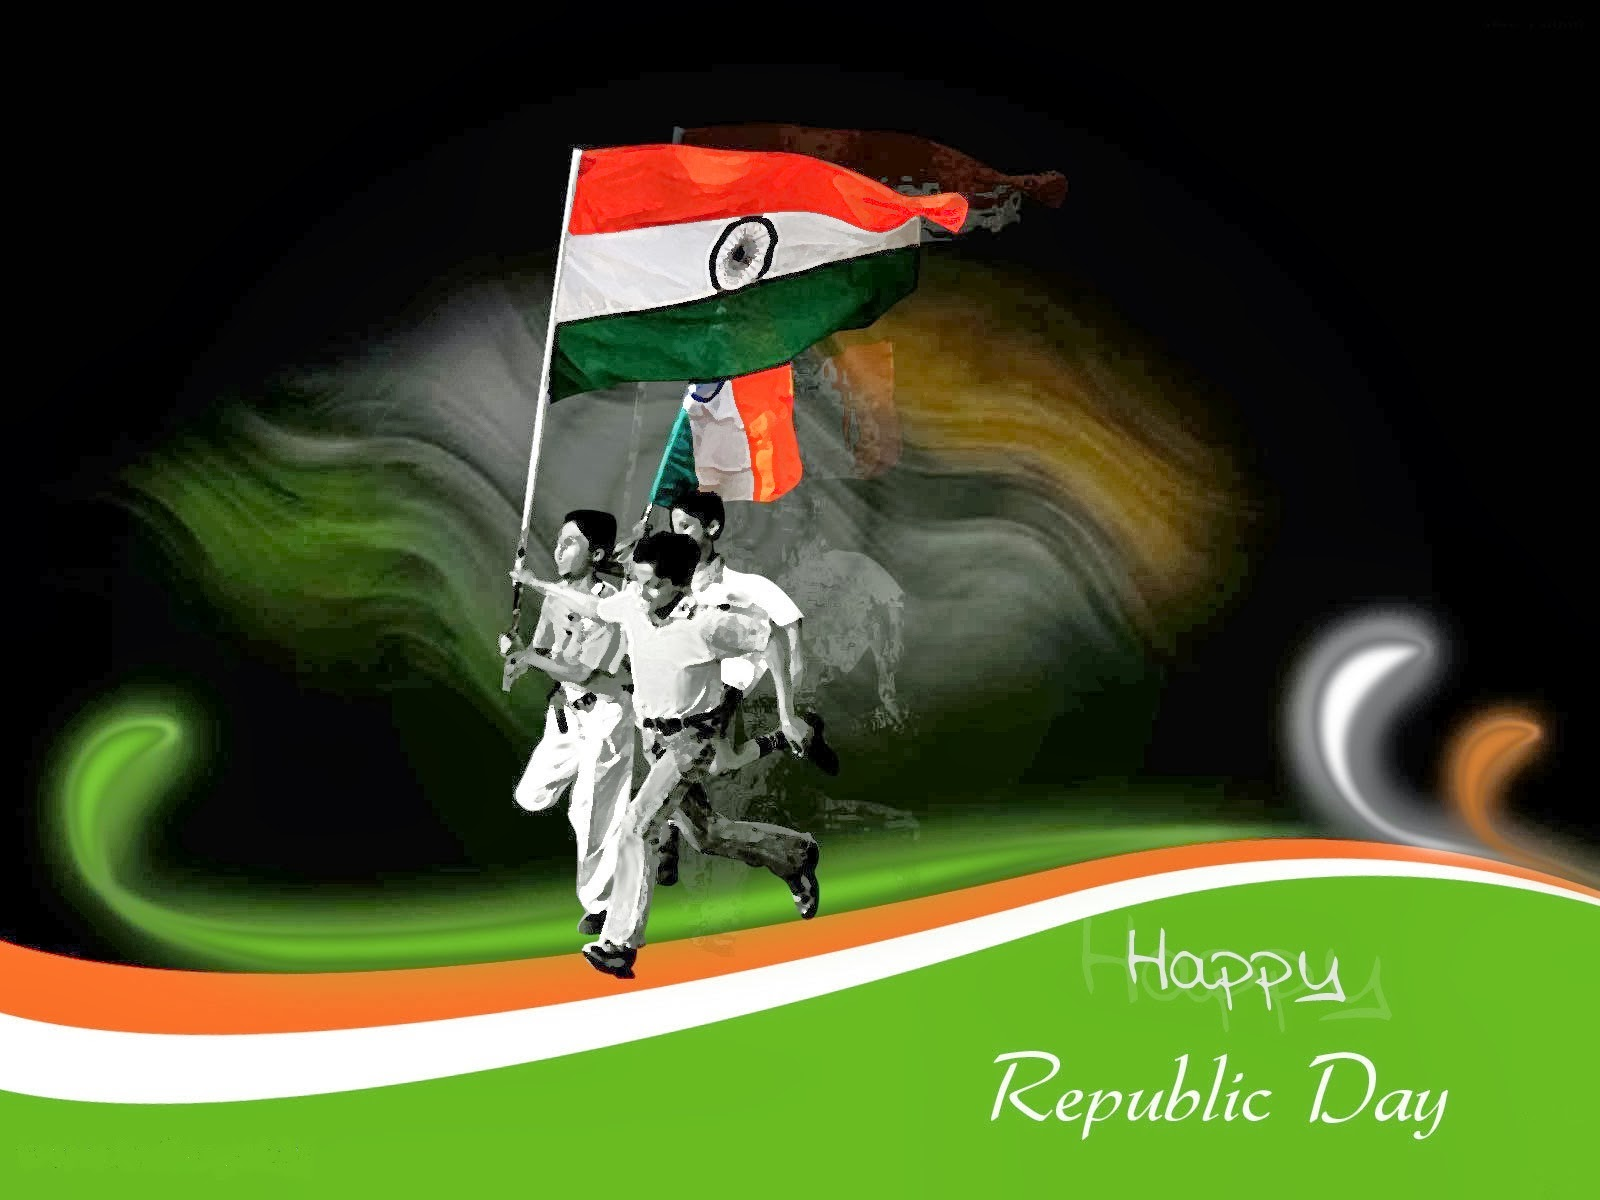 republic day speech and gantantra divas short essay for students happy republic day images 2017 status